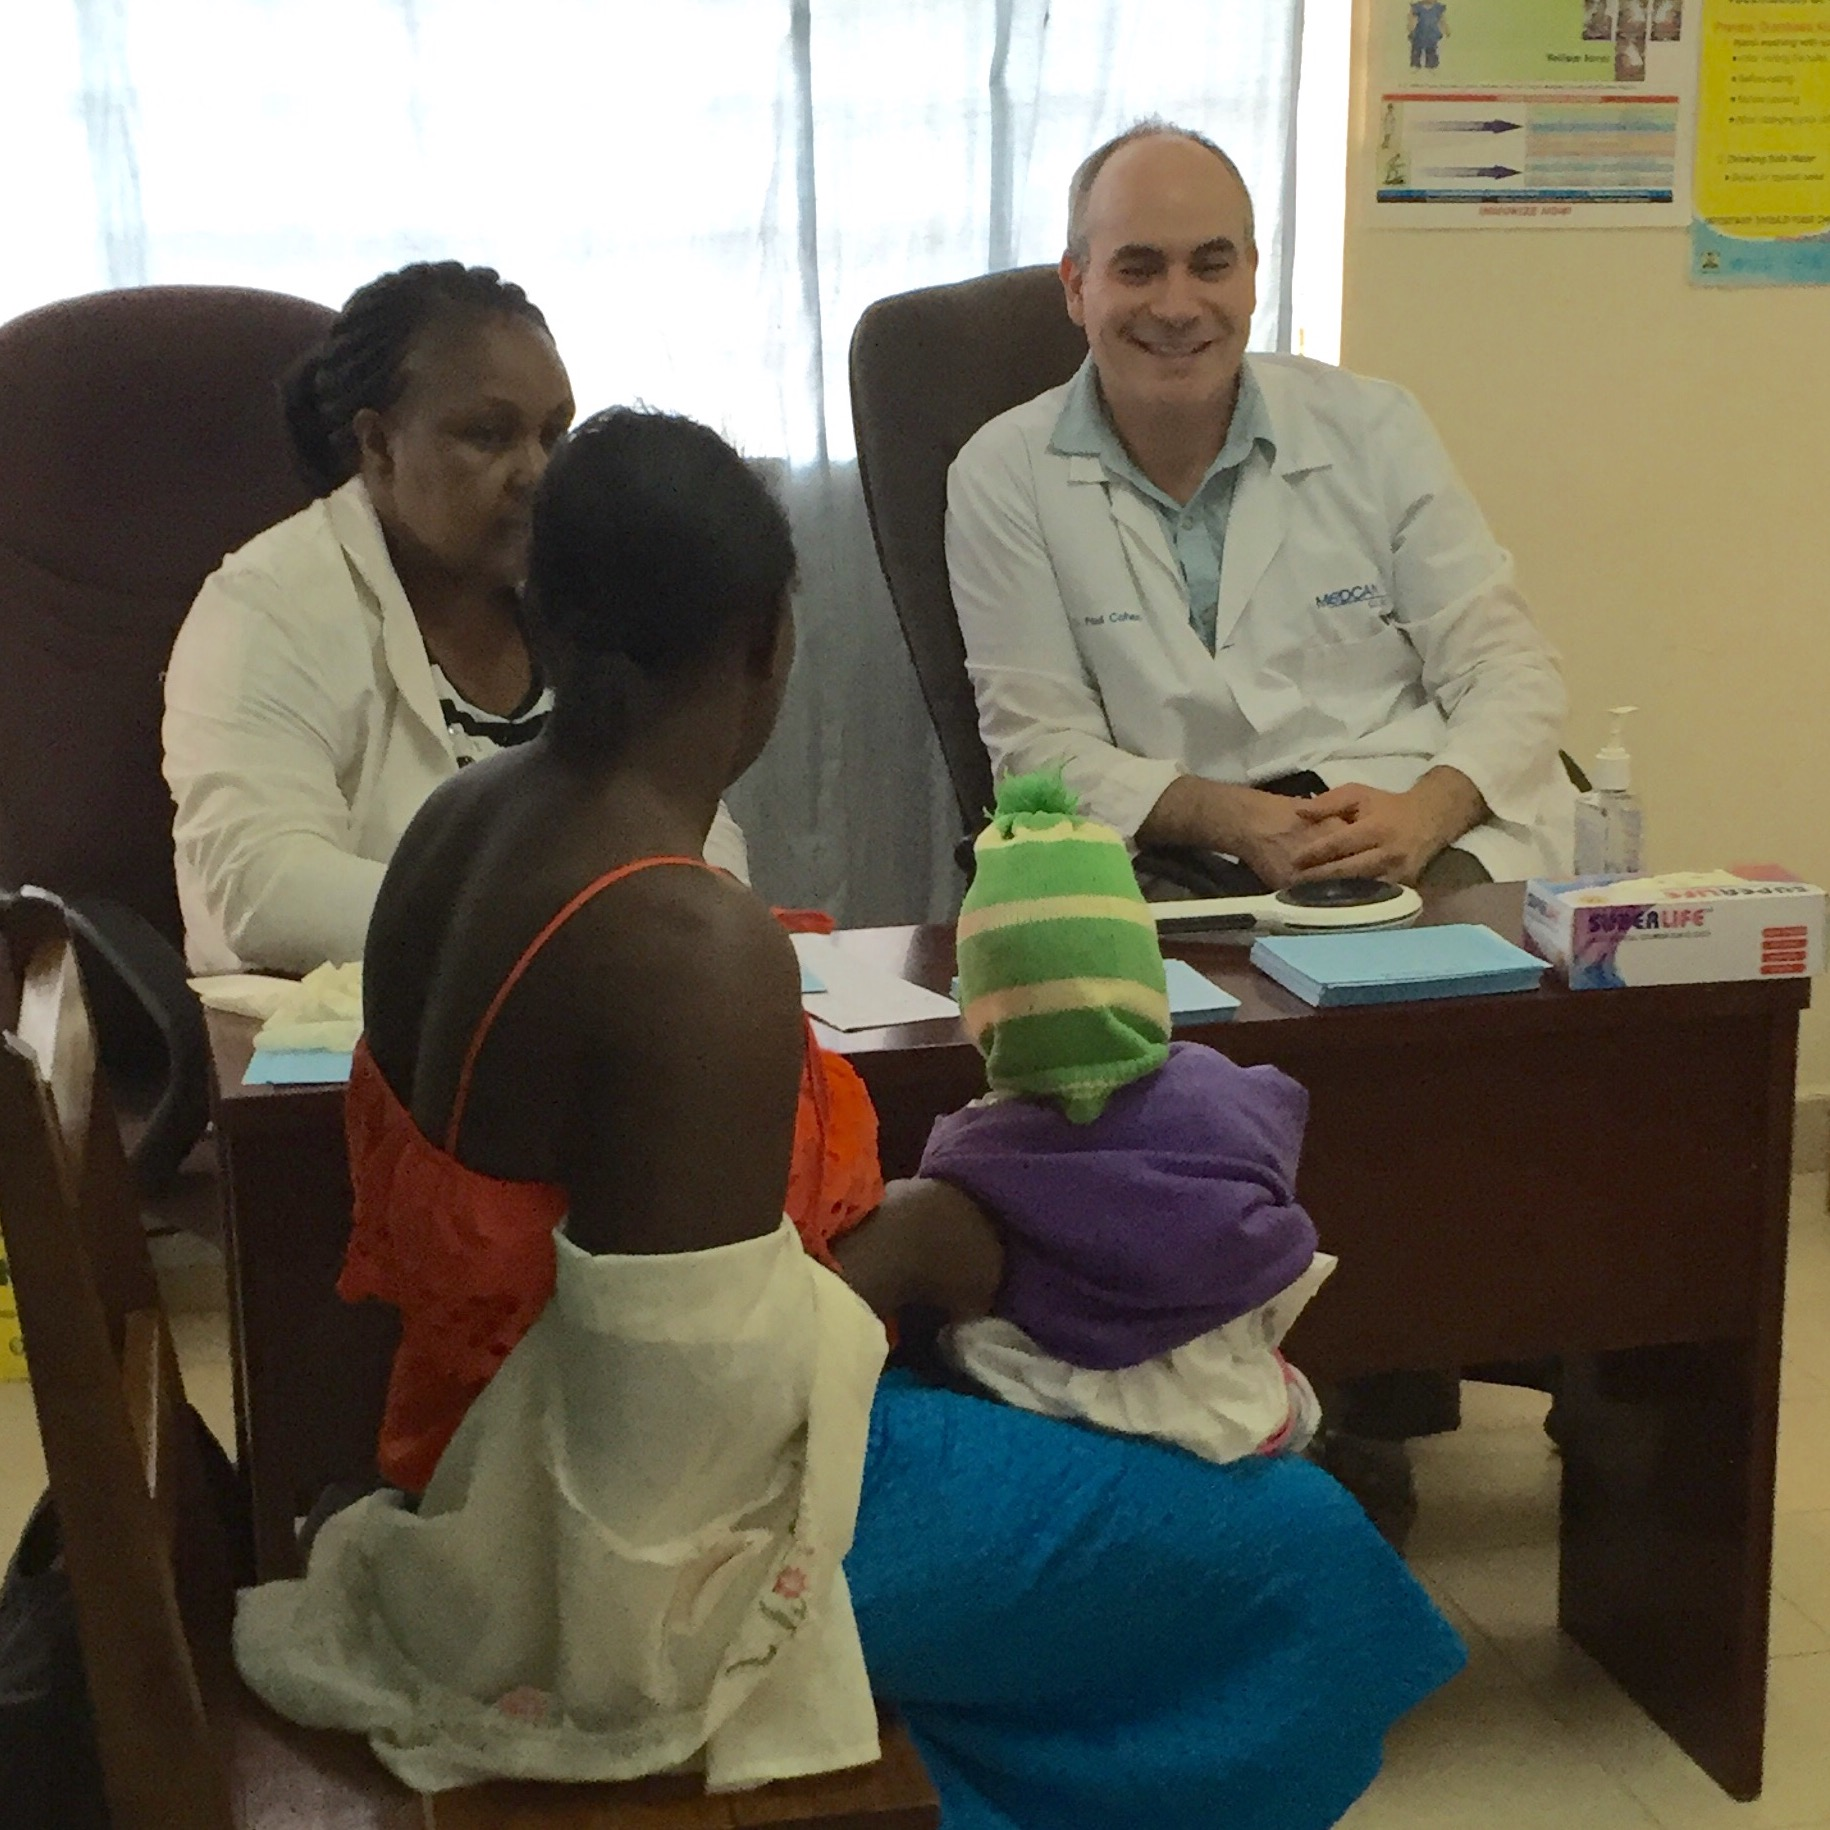 Dr. Paul and Faith seeing a patient at the outreach.